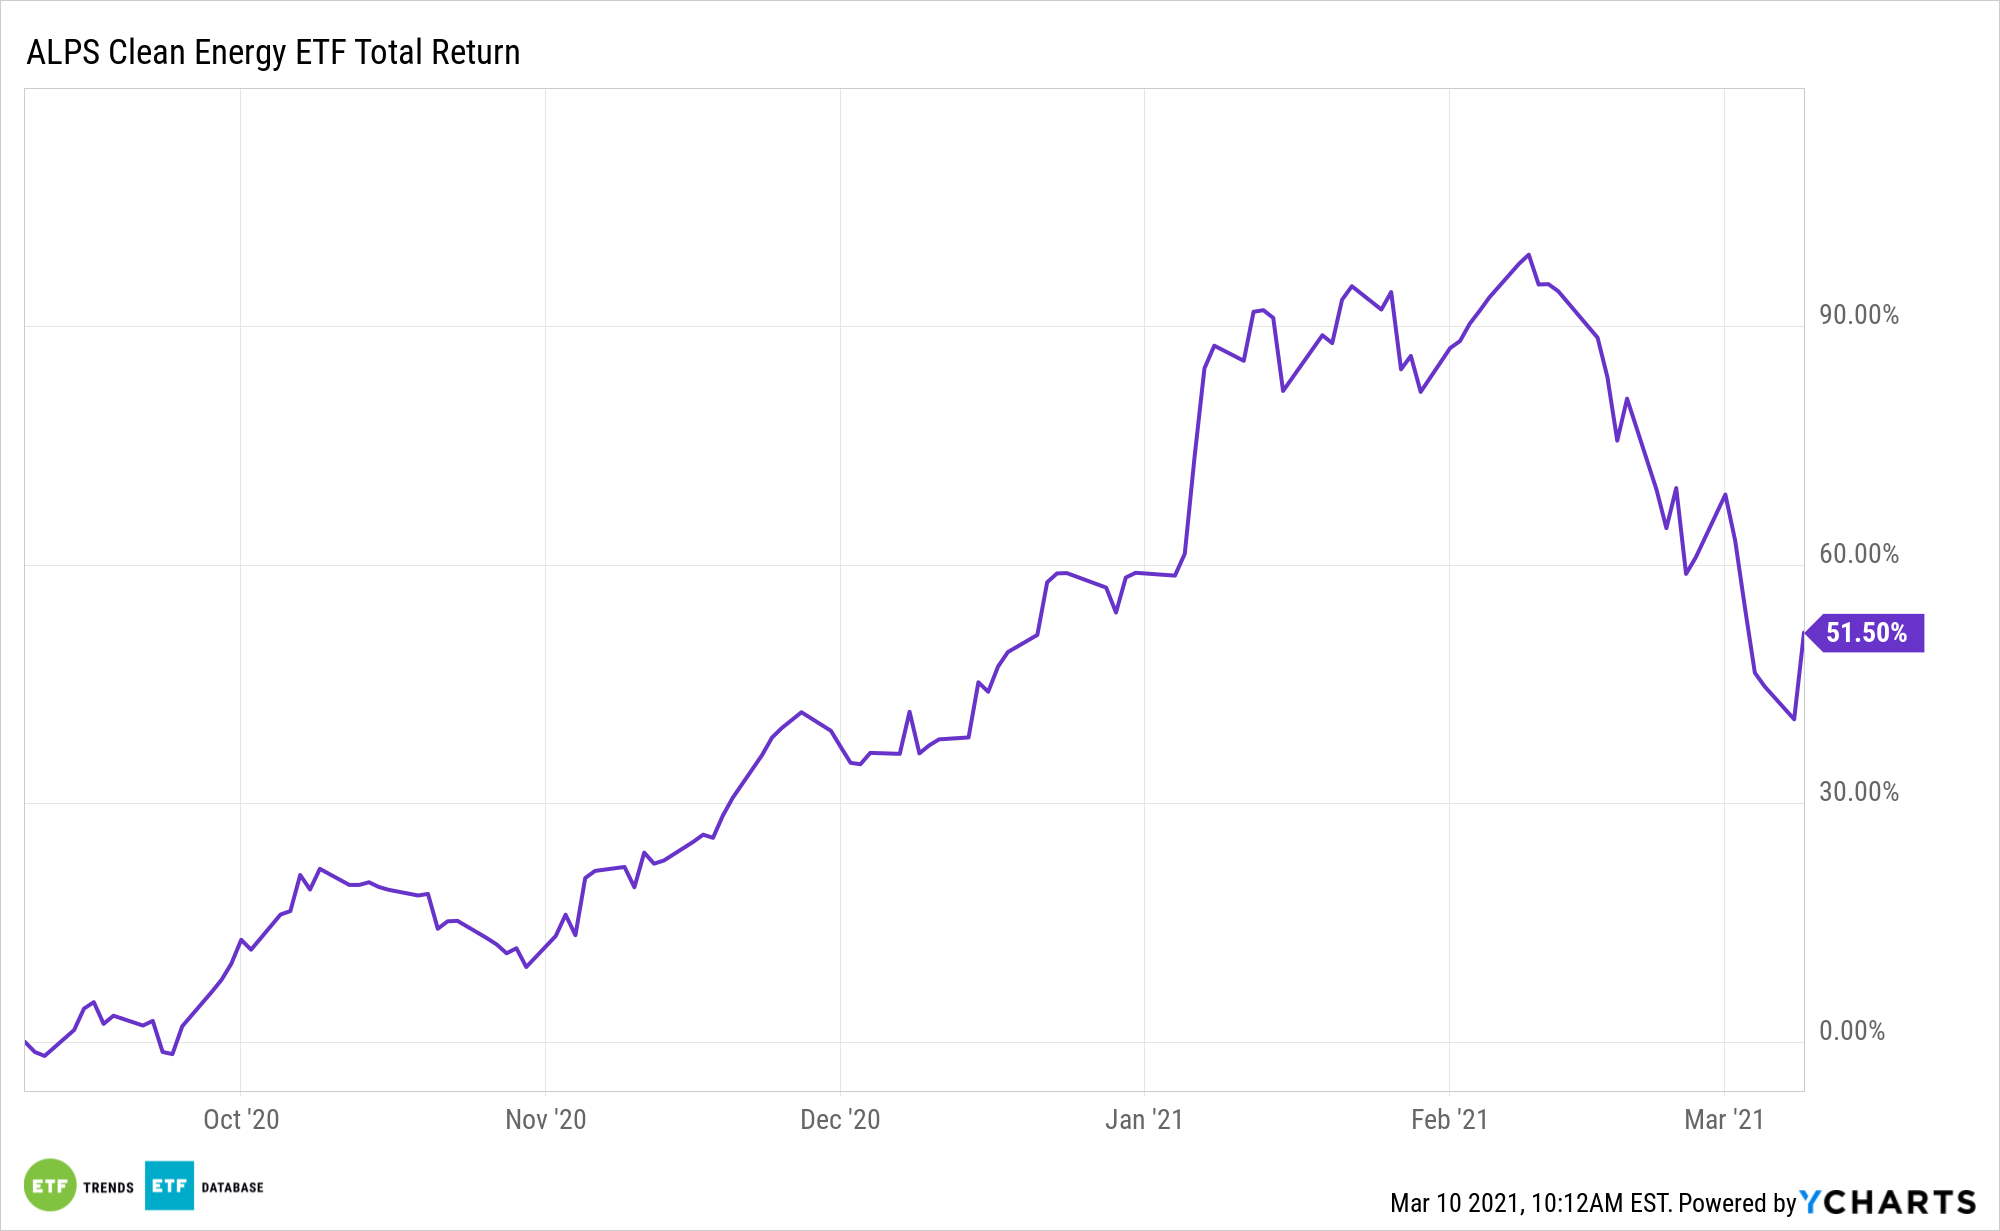 ACES 6 Month Total Return